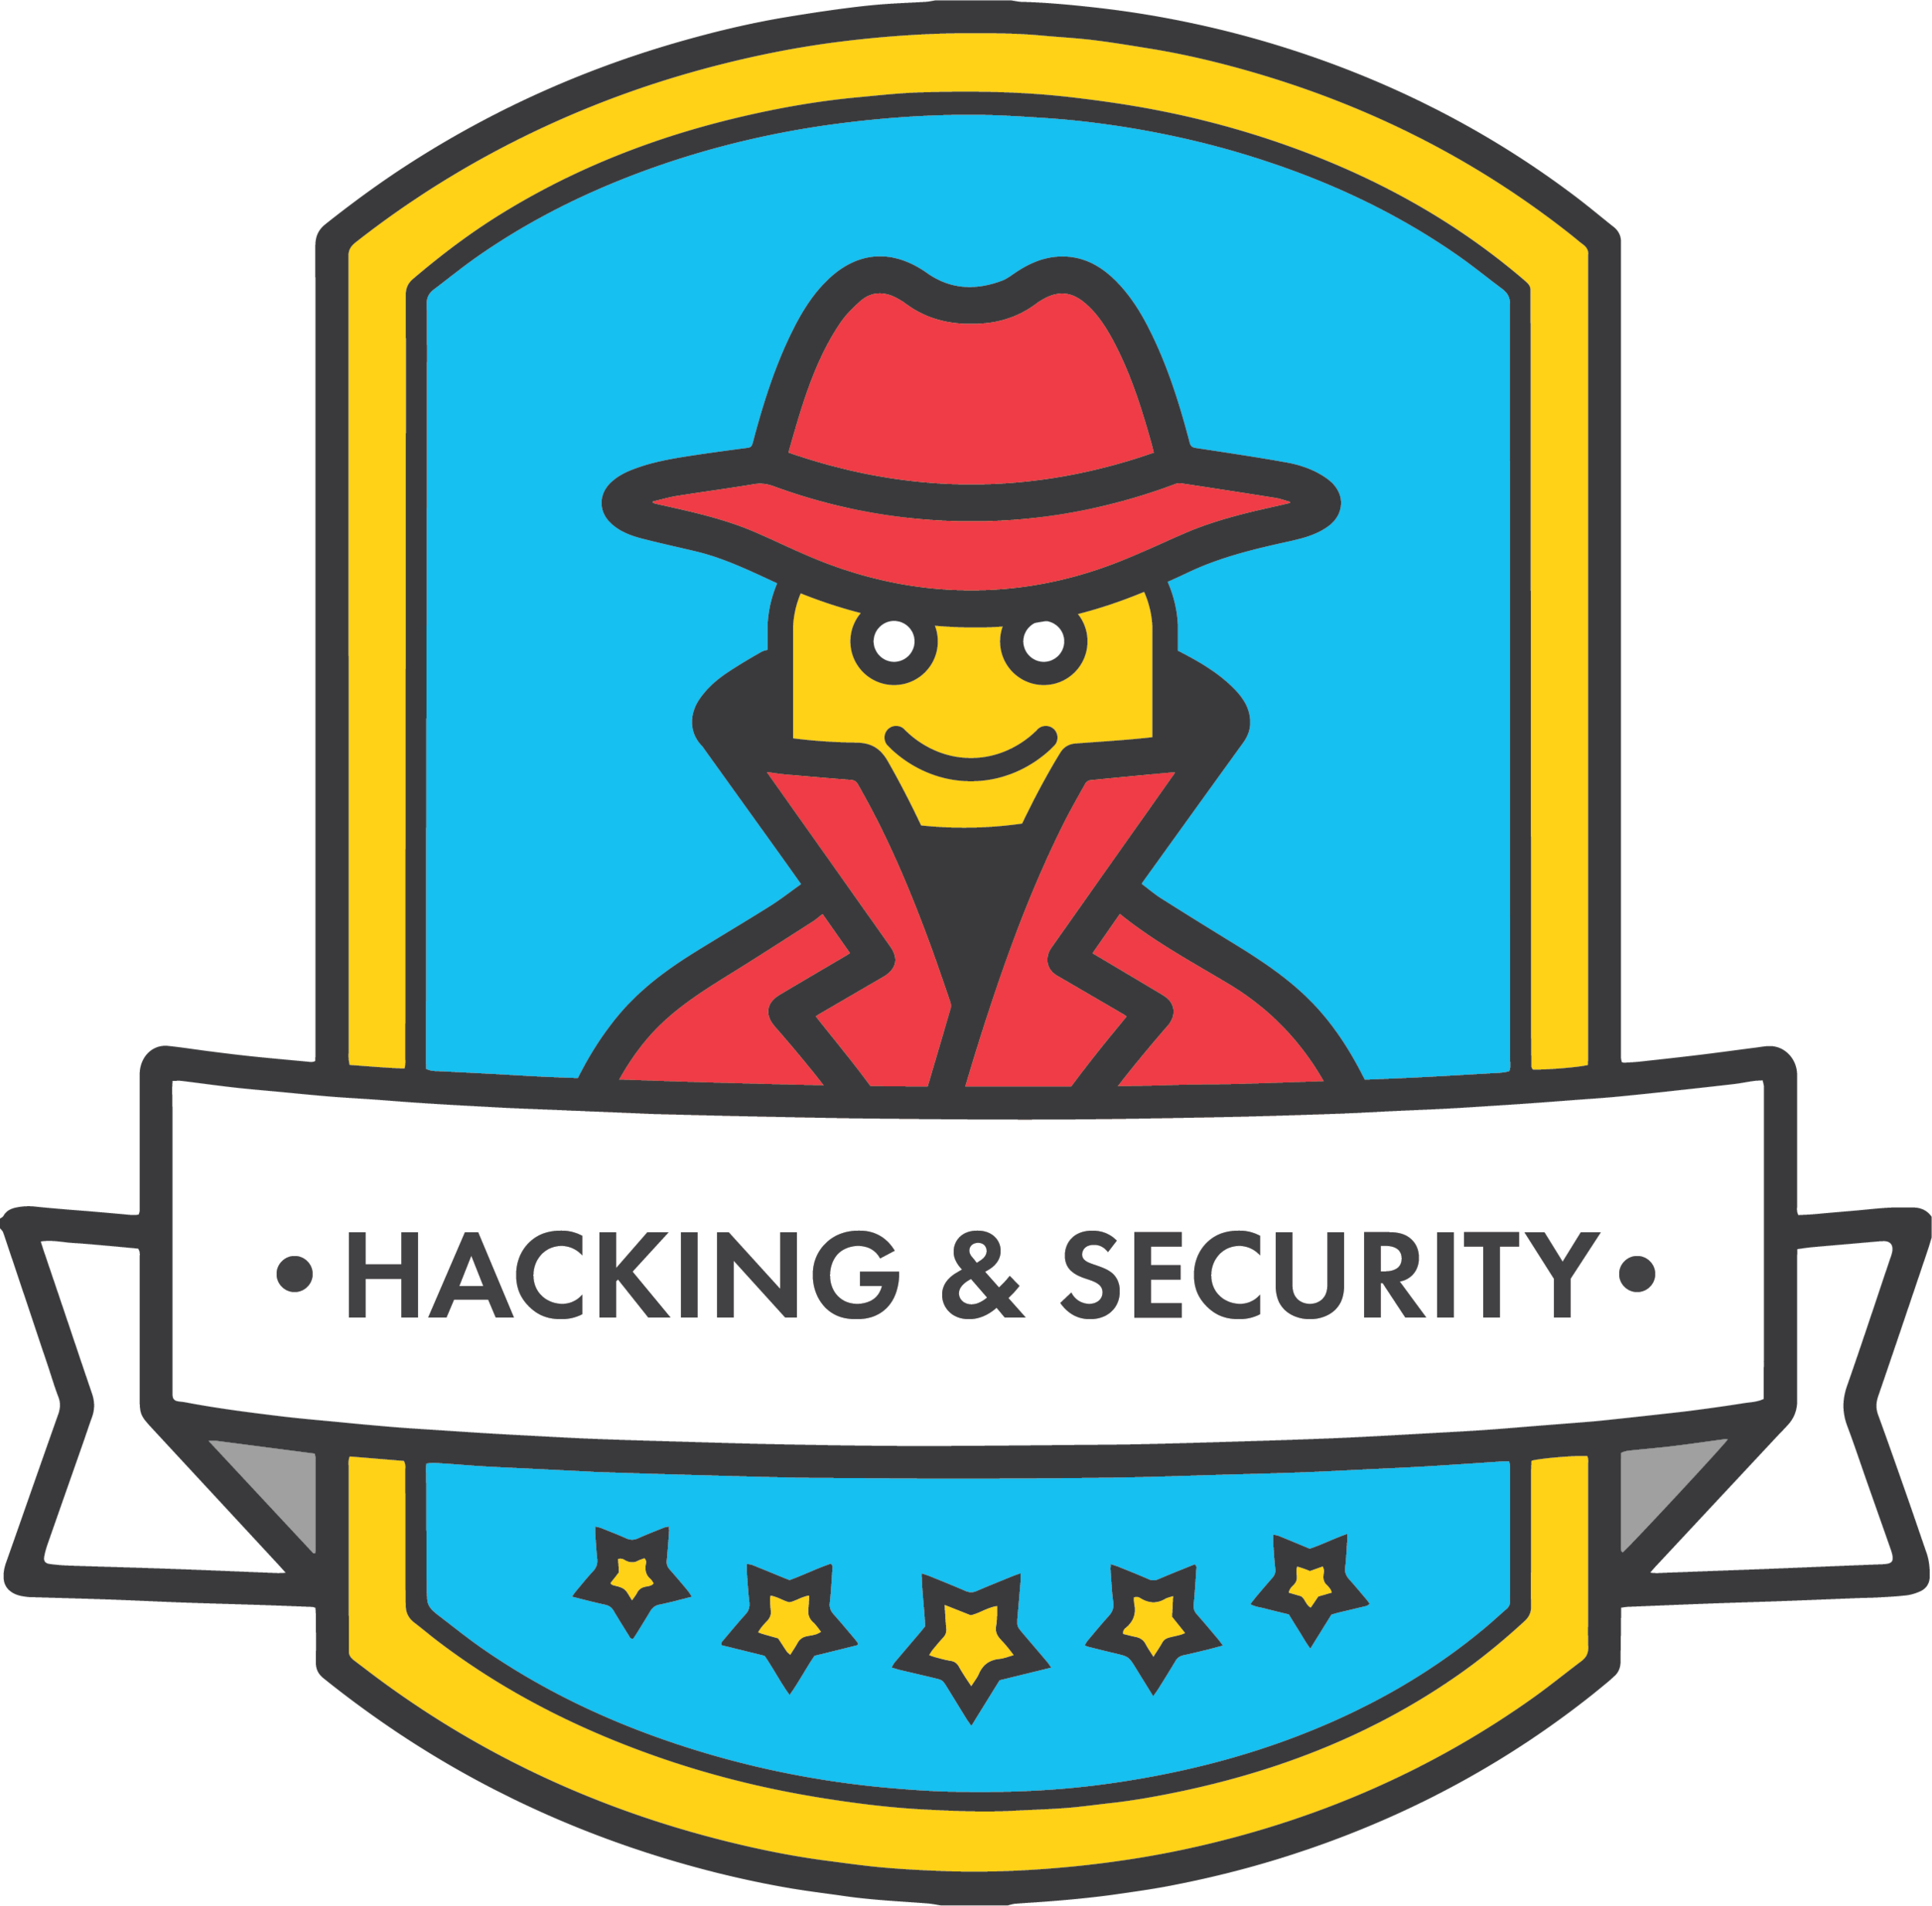 hacking-security.png